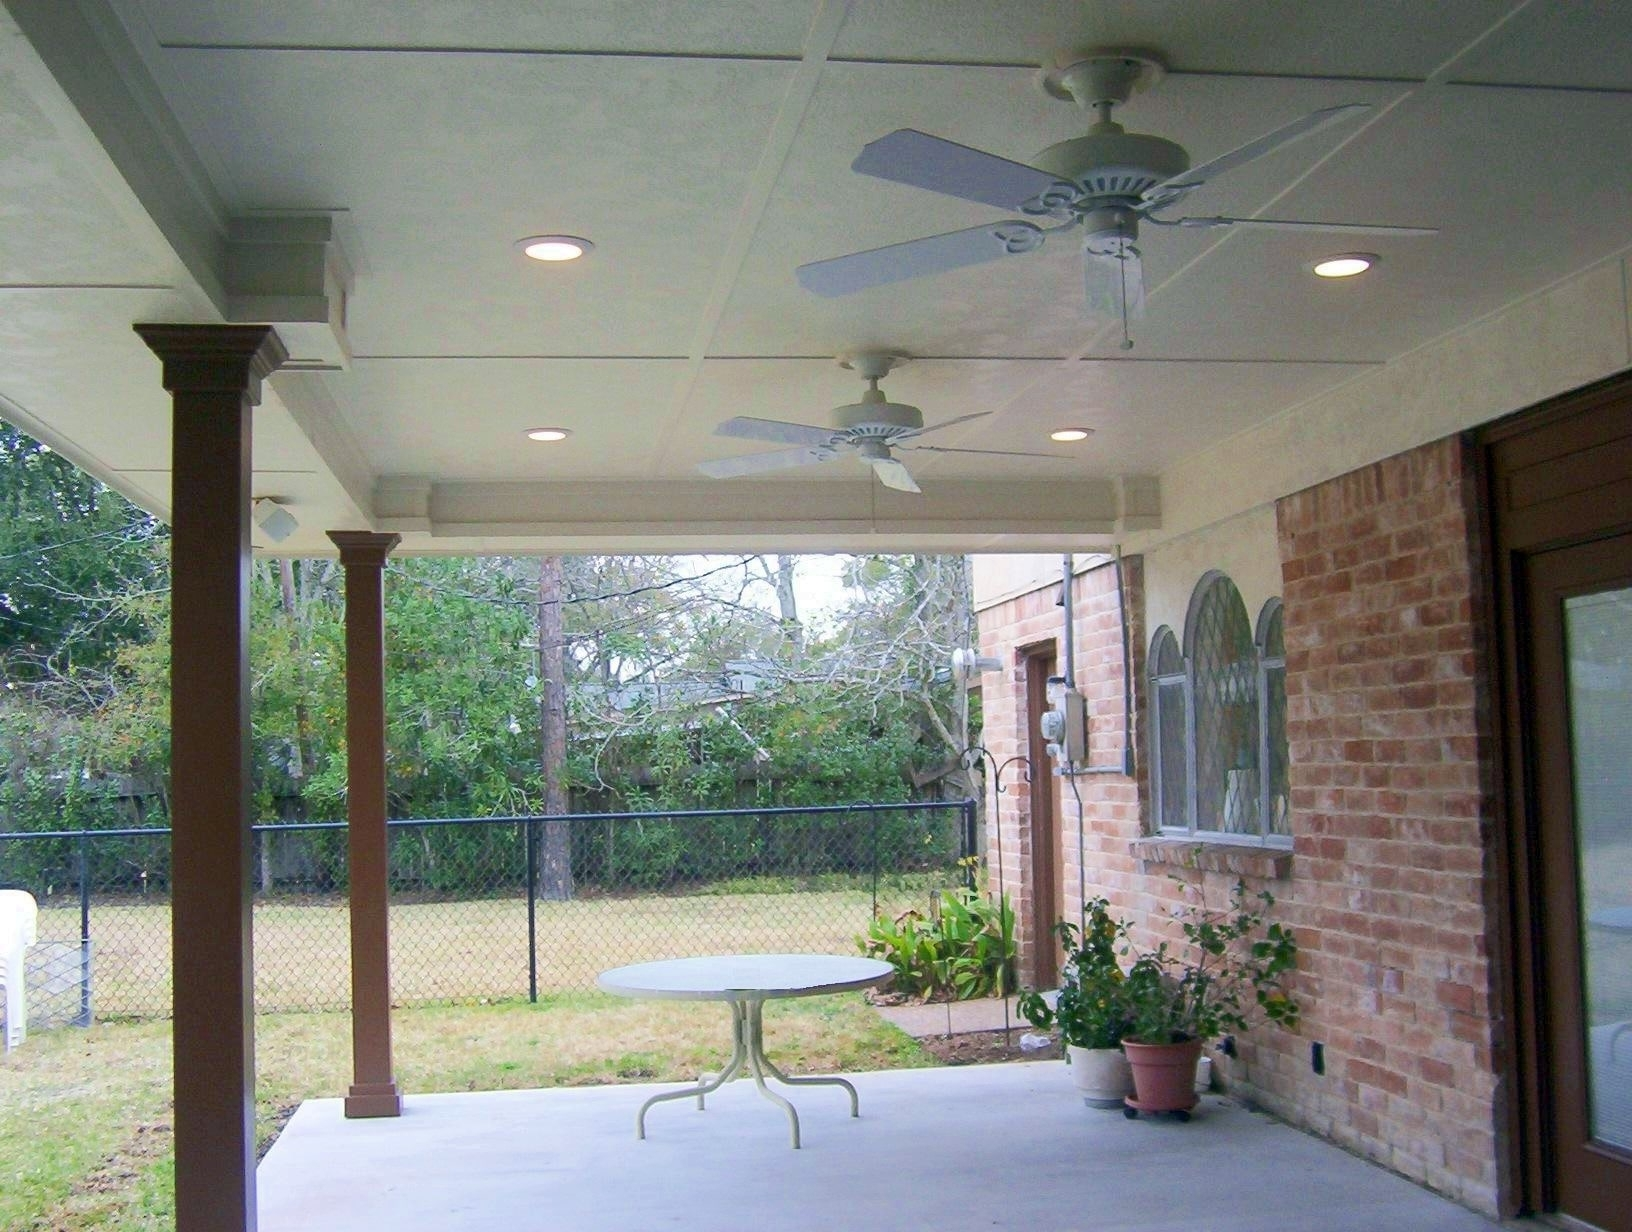 Widely Used Outdoor Patio Ceiling Fans With Lights With Patio Outdoor Ceiling Fan With Light — Sherizampelli Landscape (View 20 of 20)